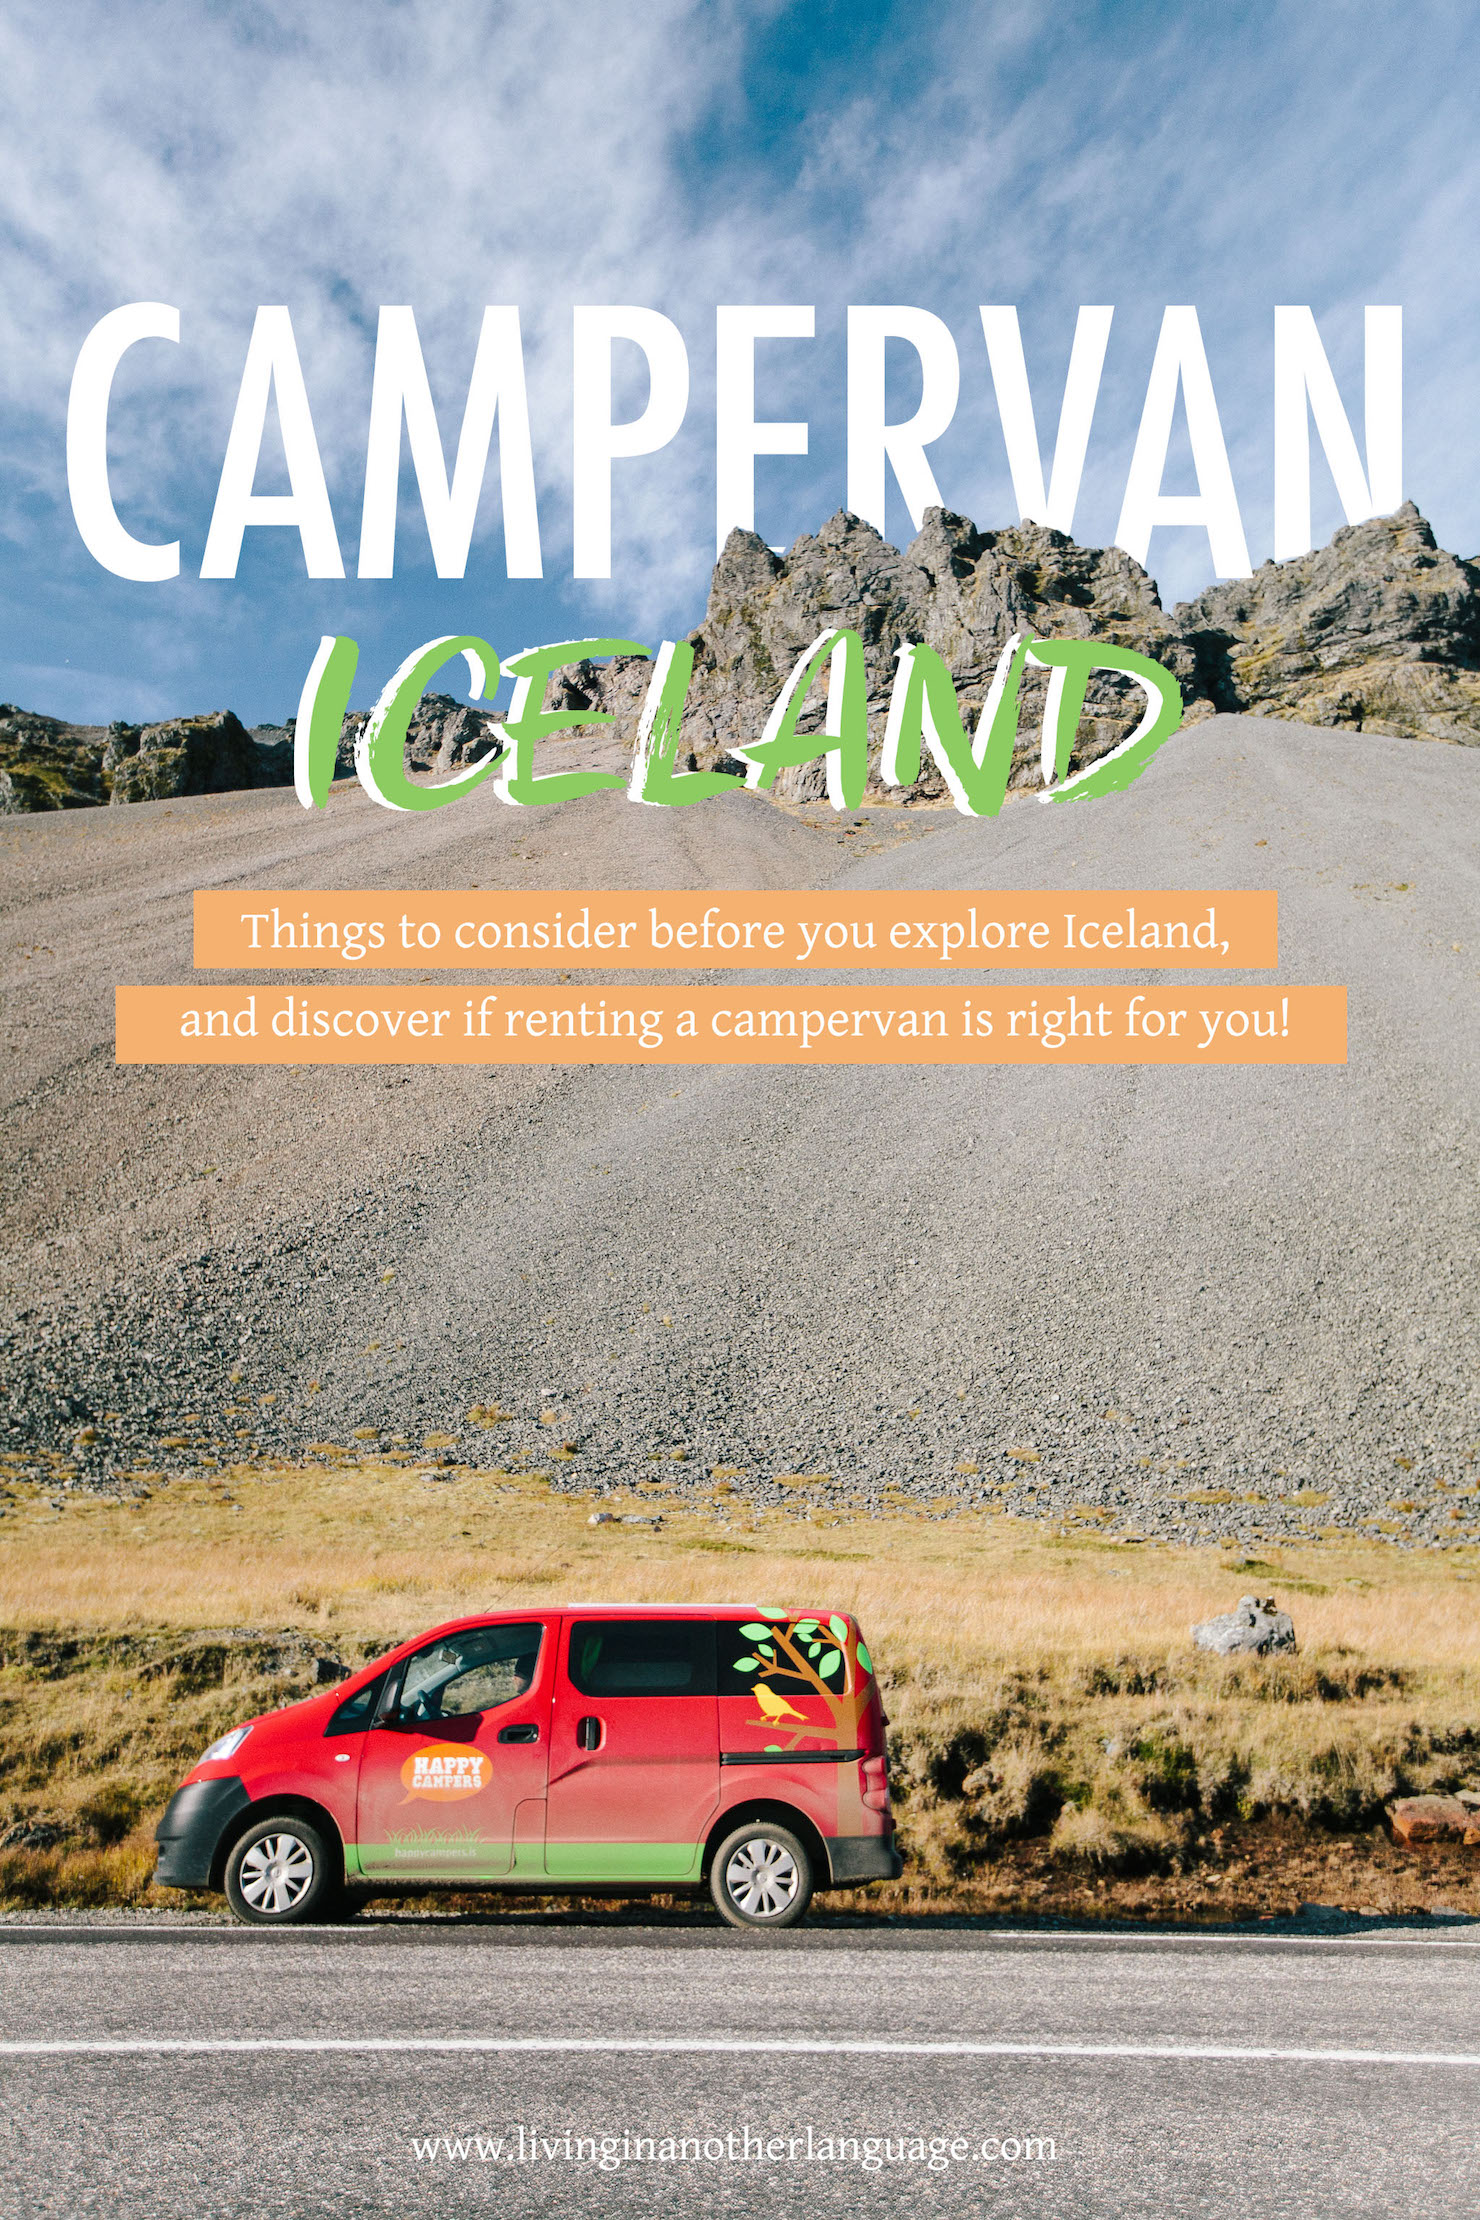 campervan iceland with happy campers - living in another language